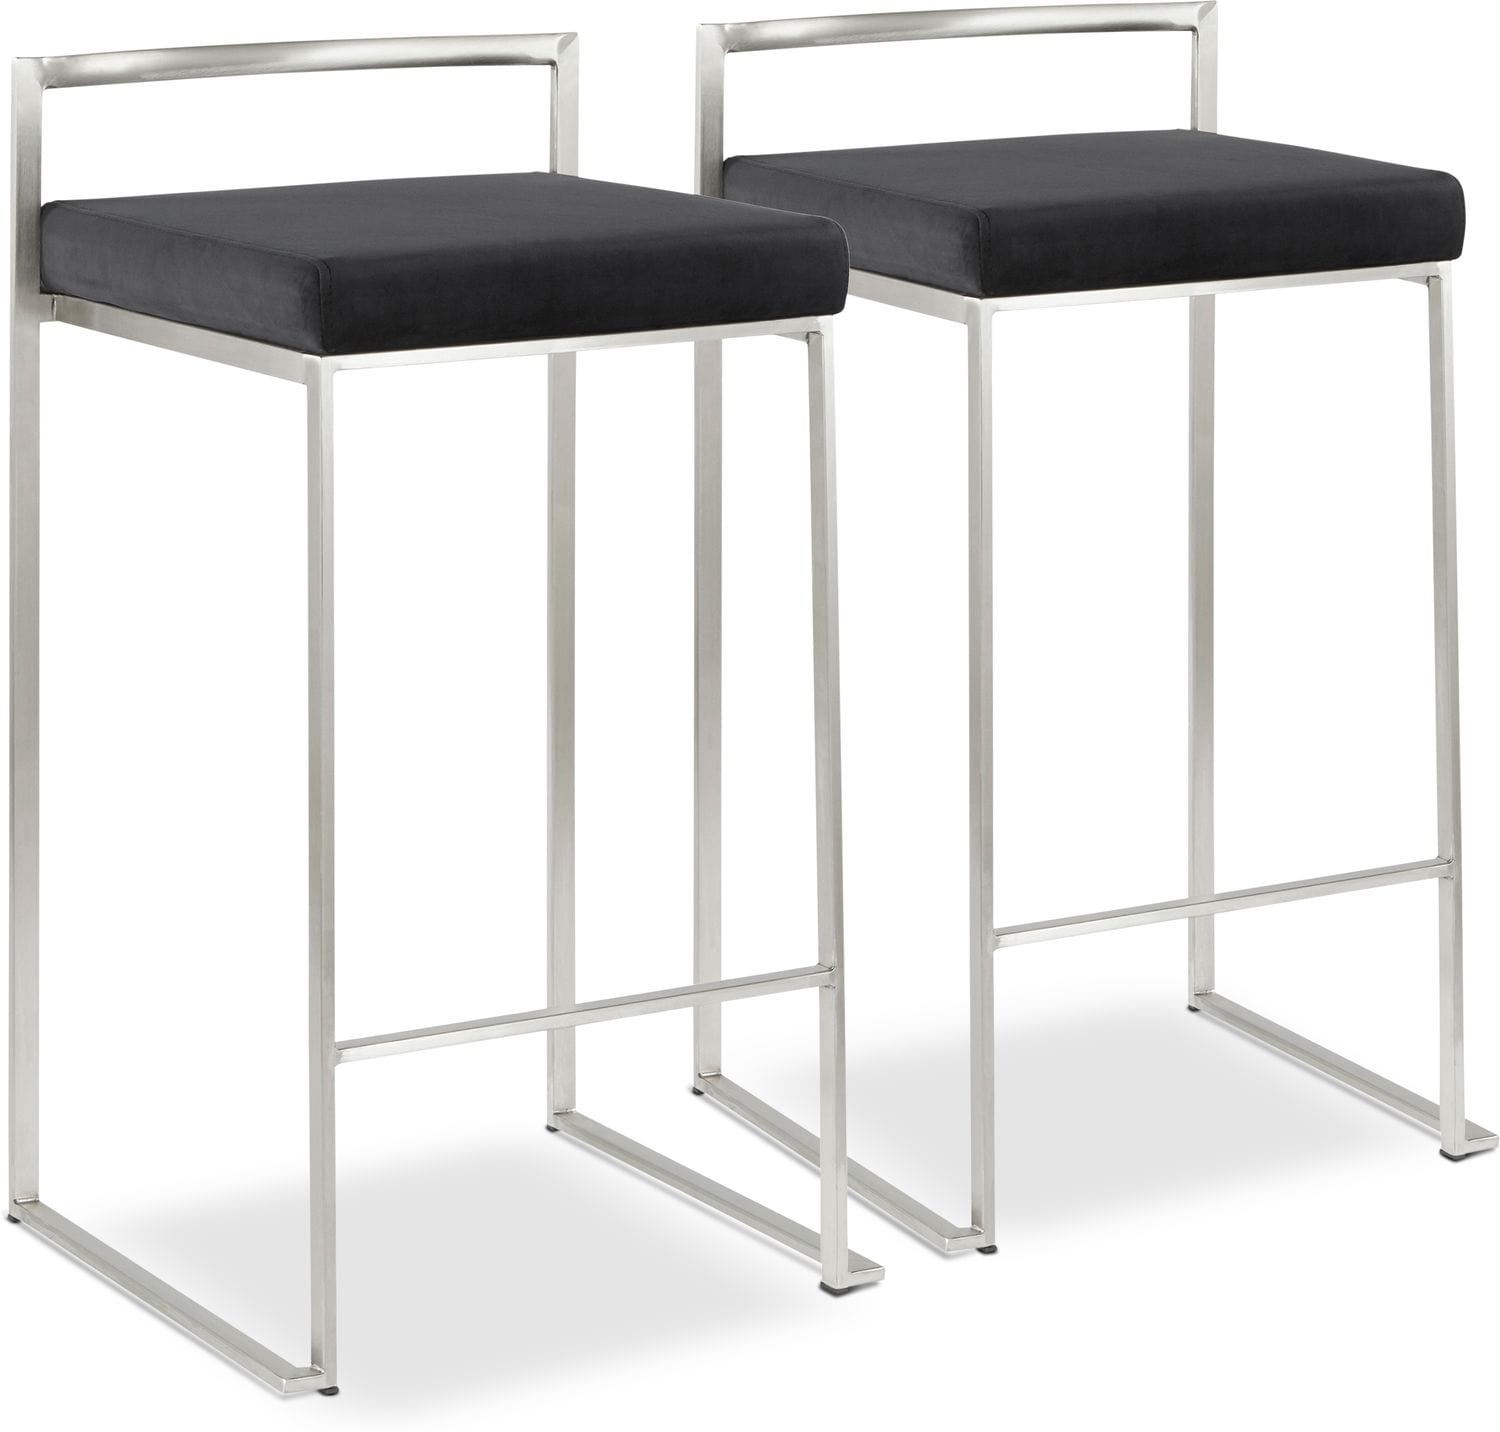 Dining Room Furniture - City Set of 2 Counter-Height Stools